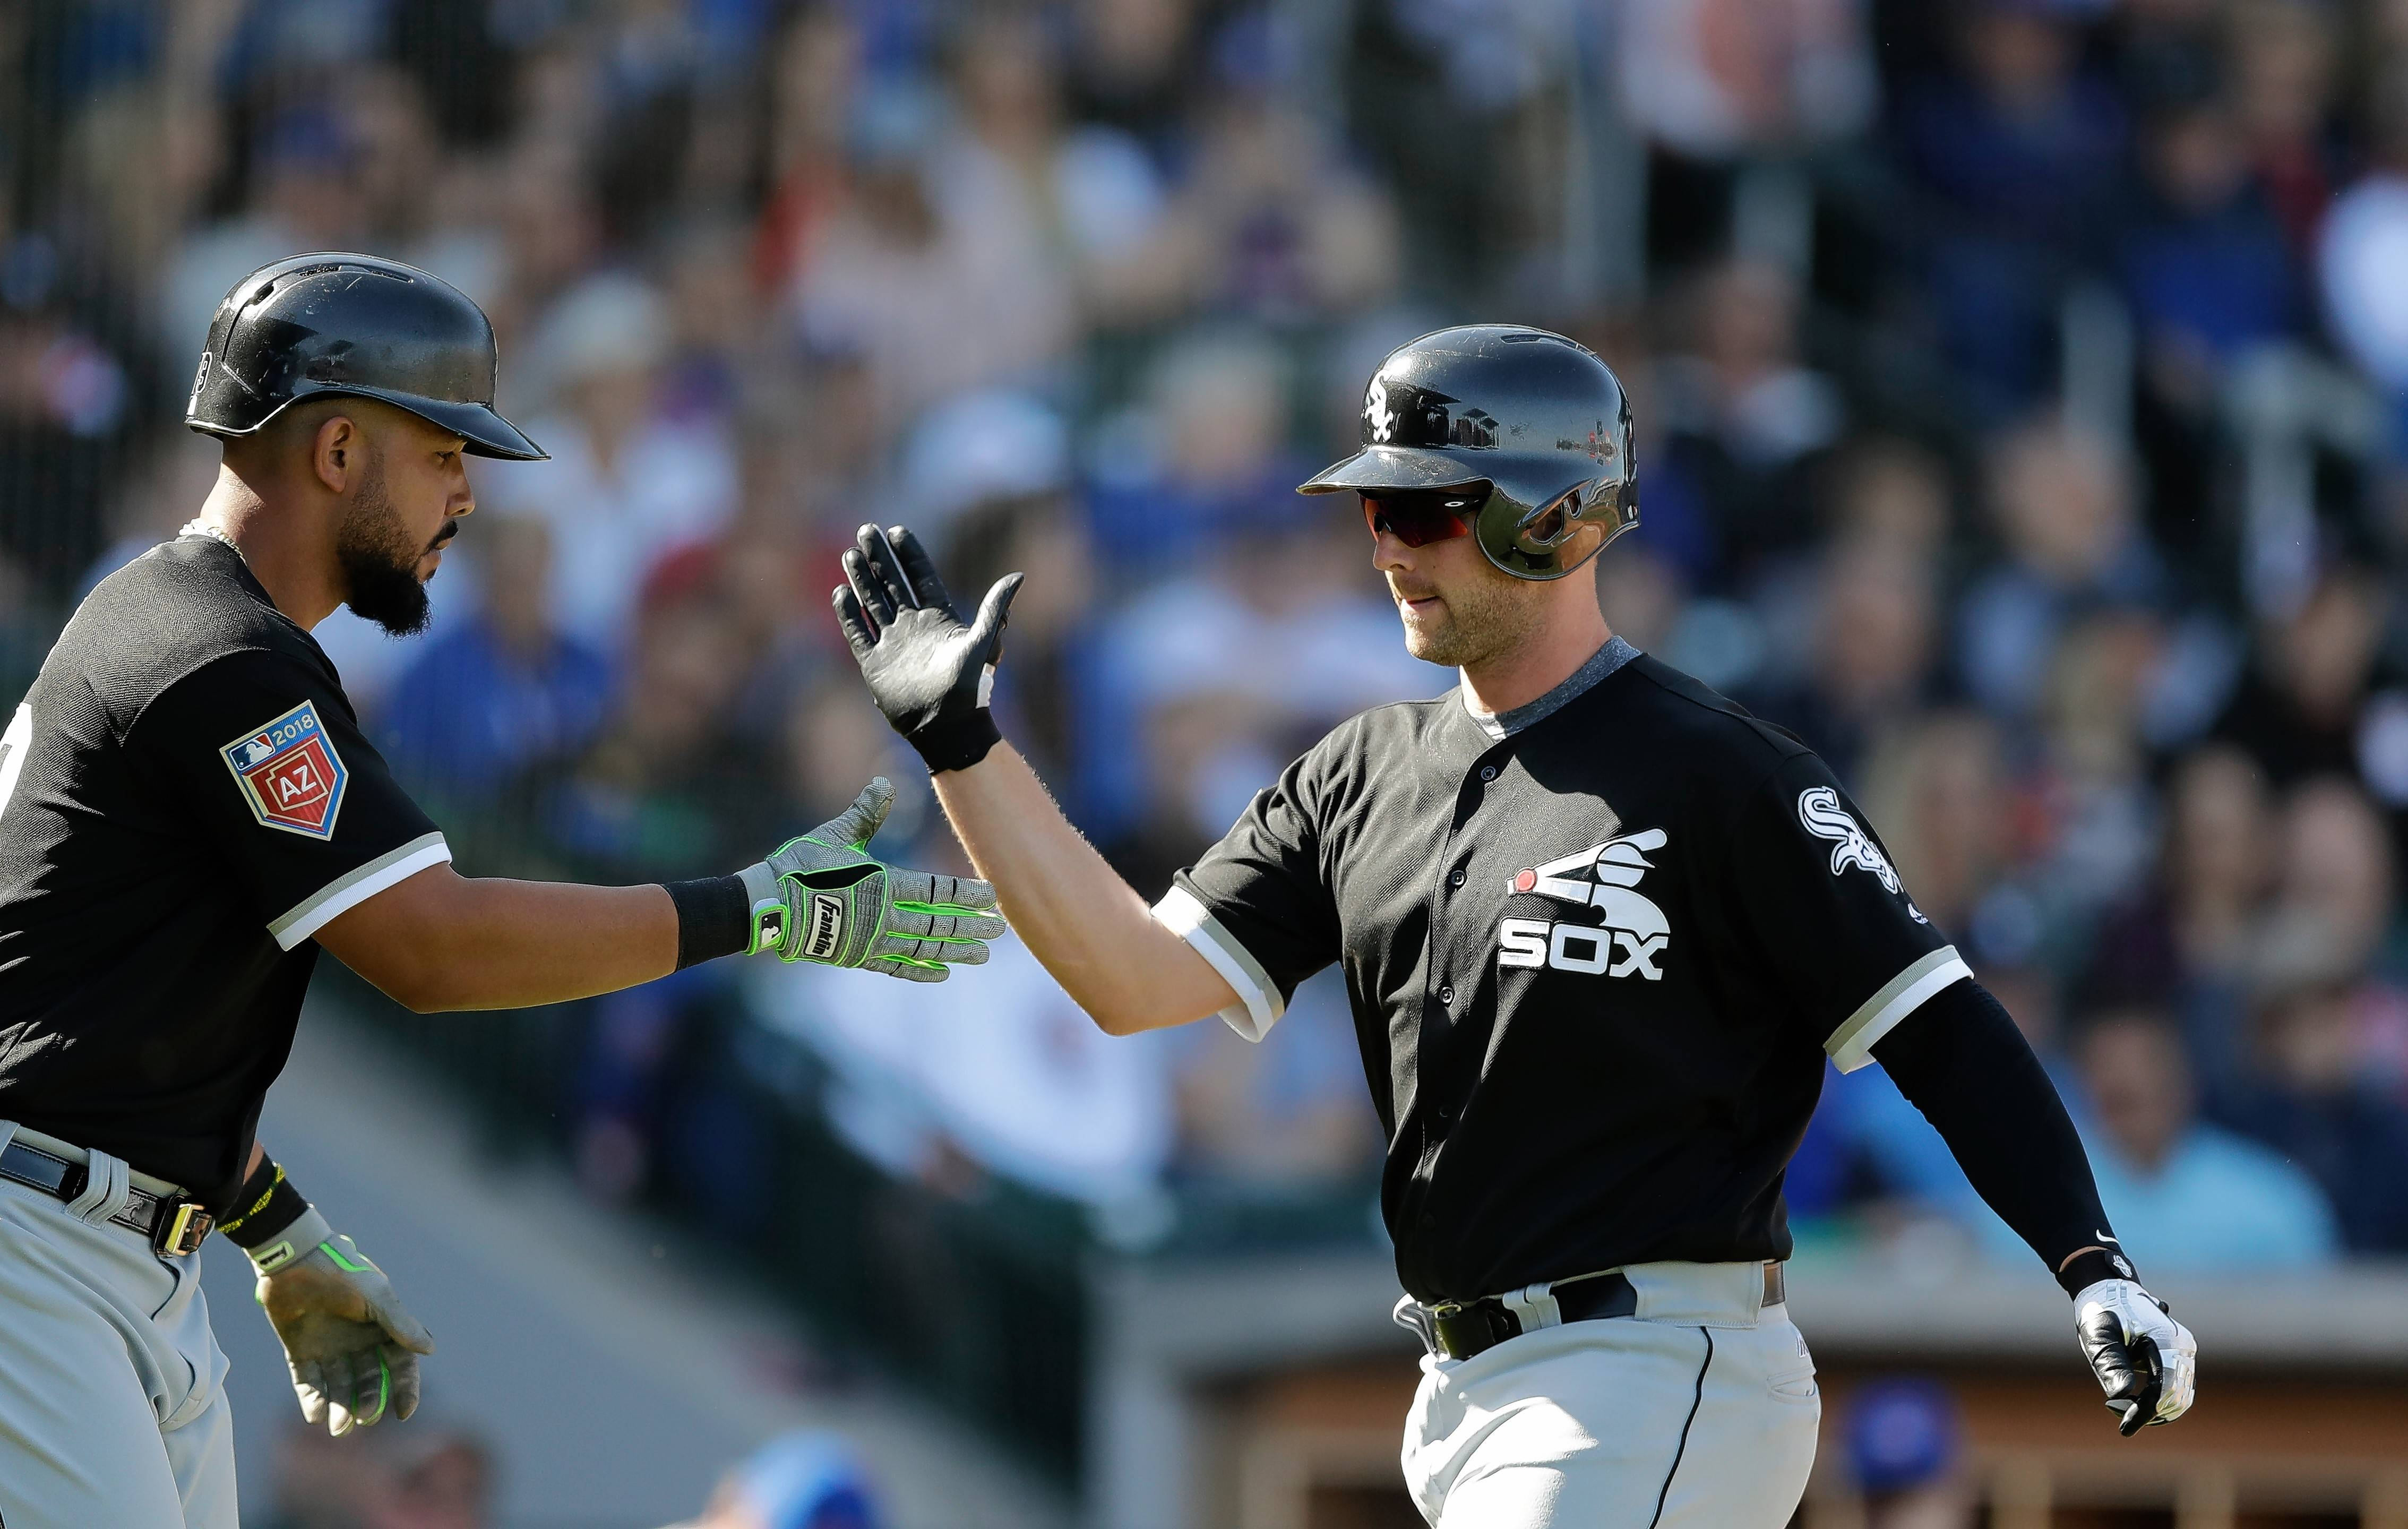 Davidson embraces challenge as designated hitter for White Sox